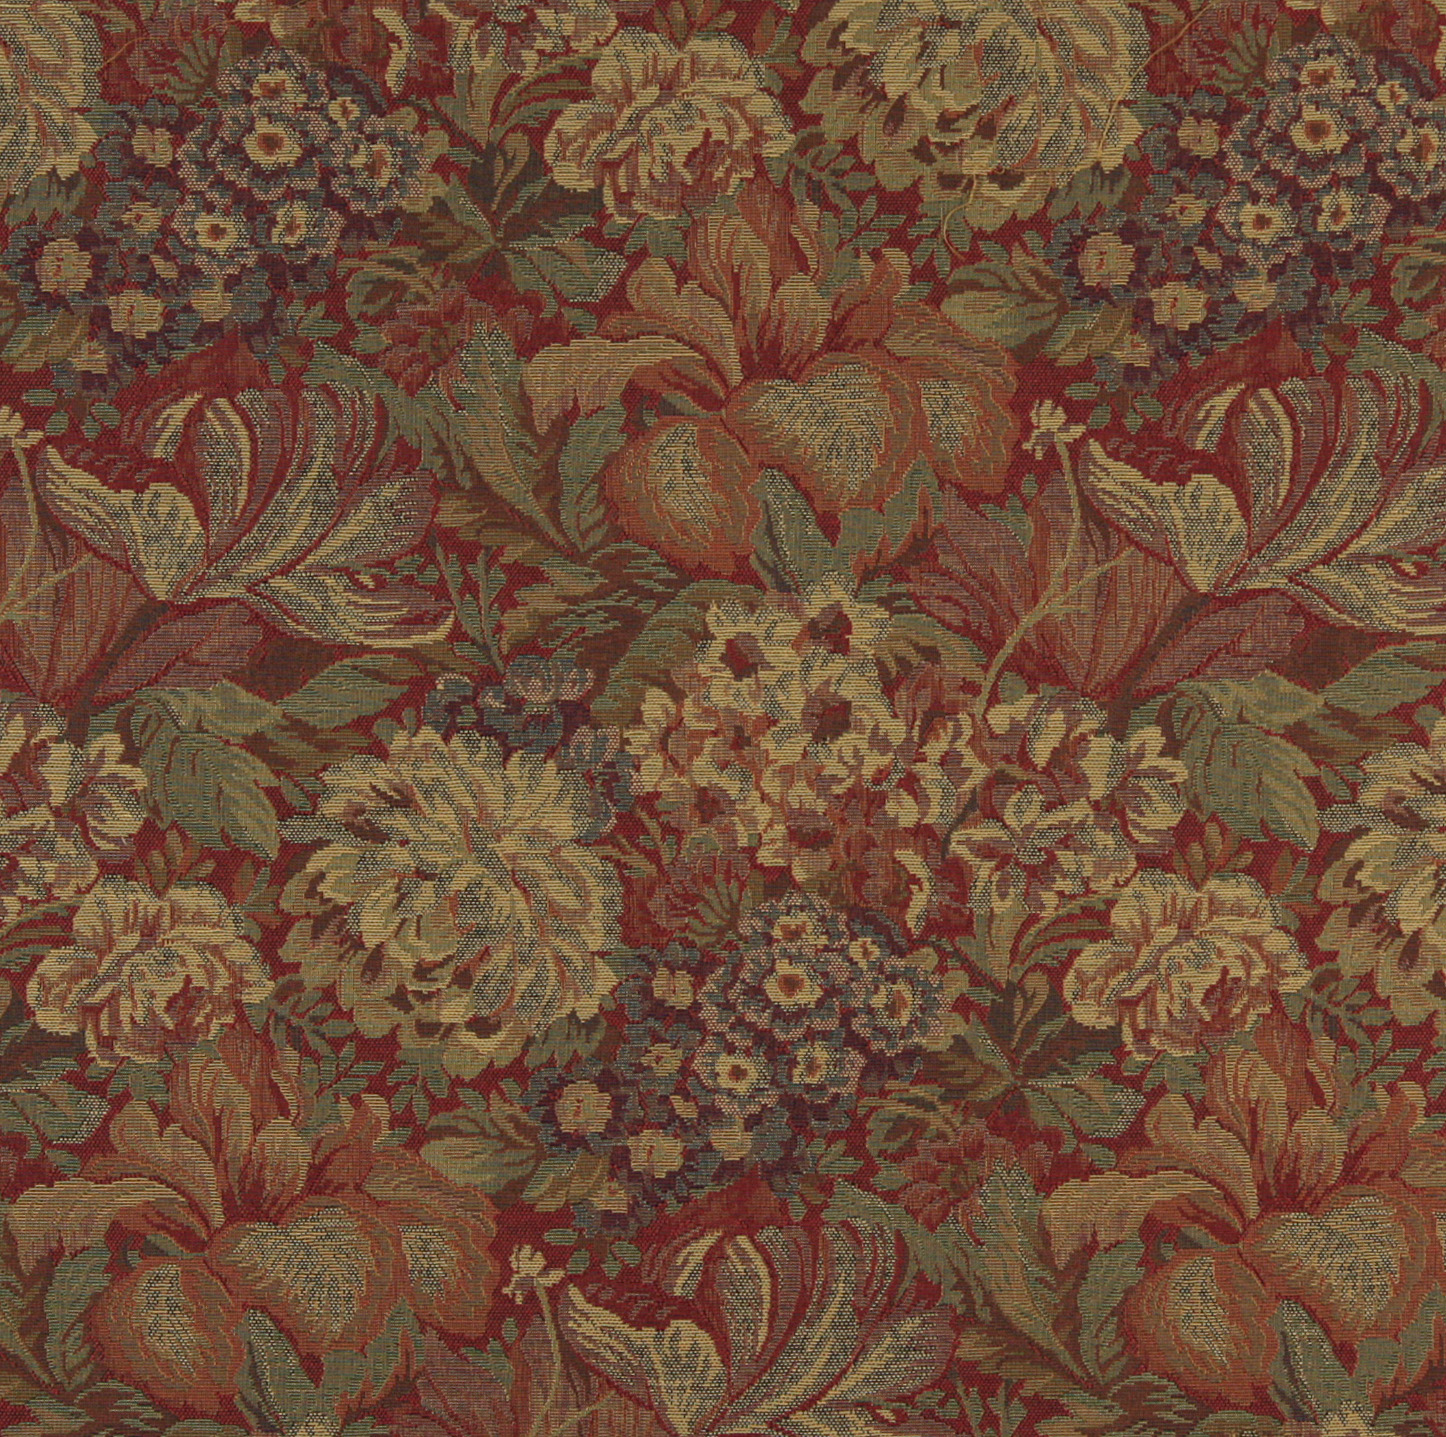 Beige And Burgundy Victorian Floral Garden Tapestry Upholstery